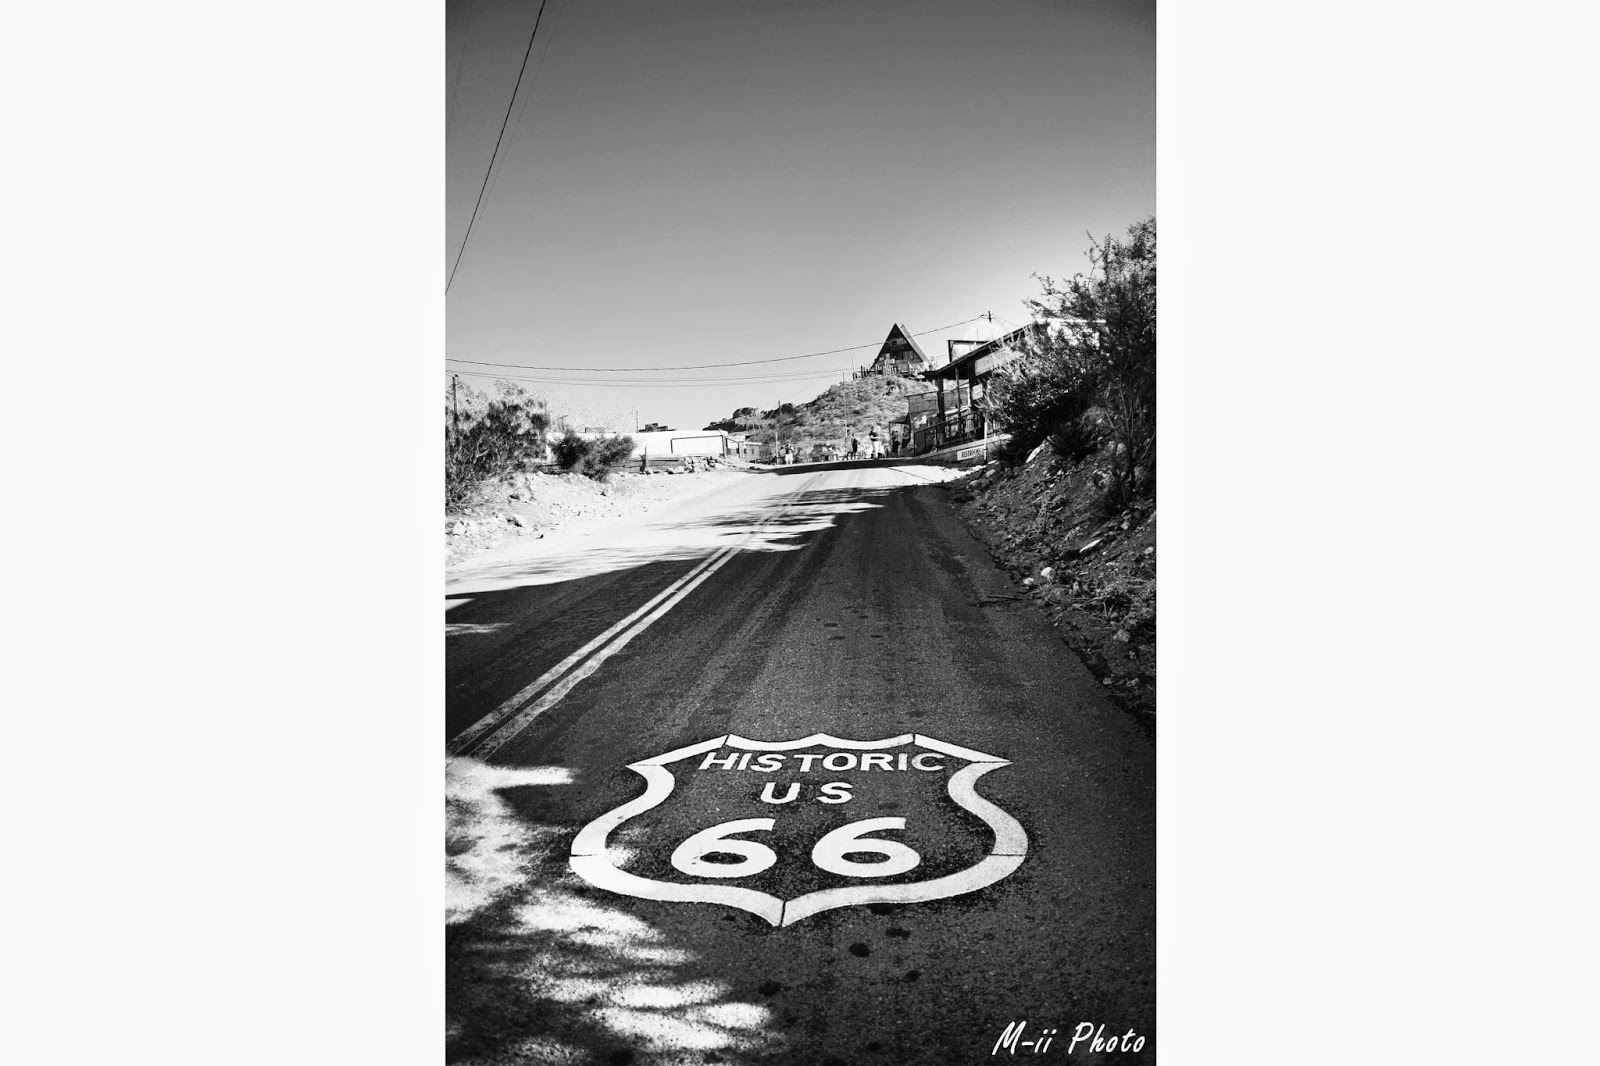 M-ii Photo : Route 66 Oatman